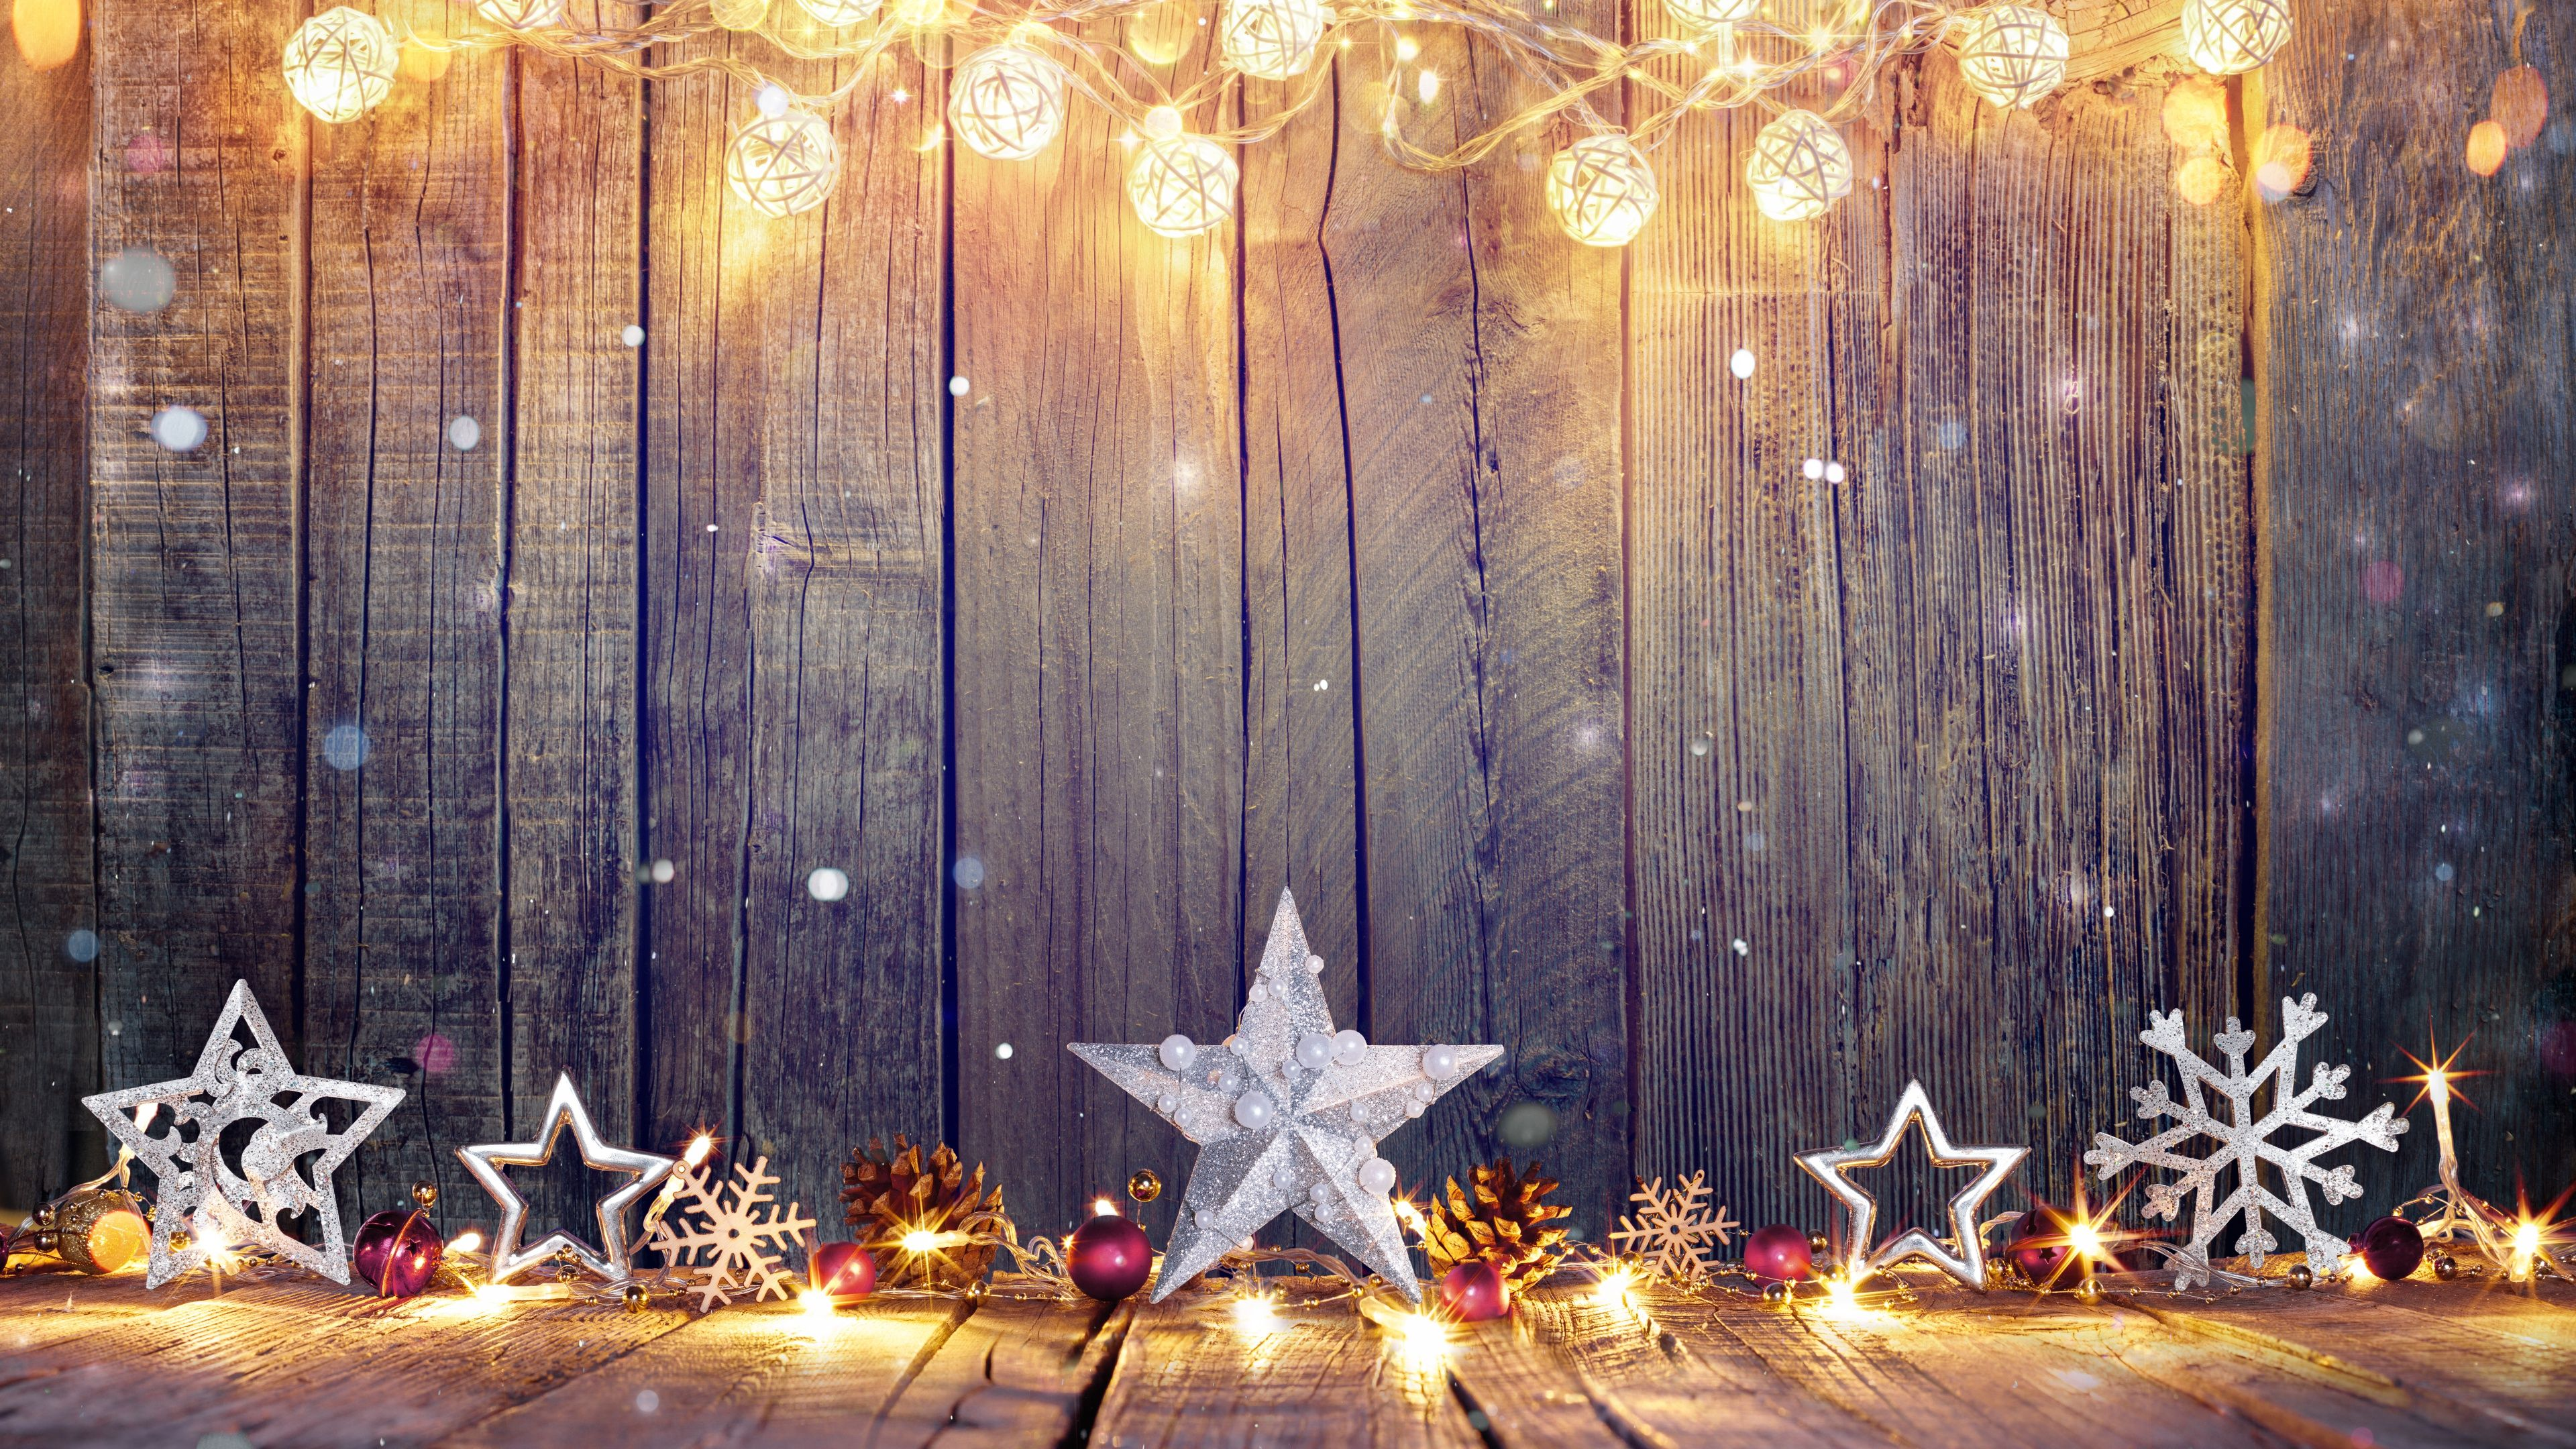 Christmas Background Hd.3840 X 2160 Christmas Wallpapers Top Free 3840 X 2160